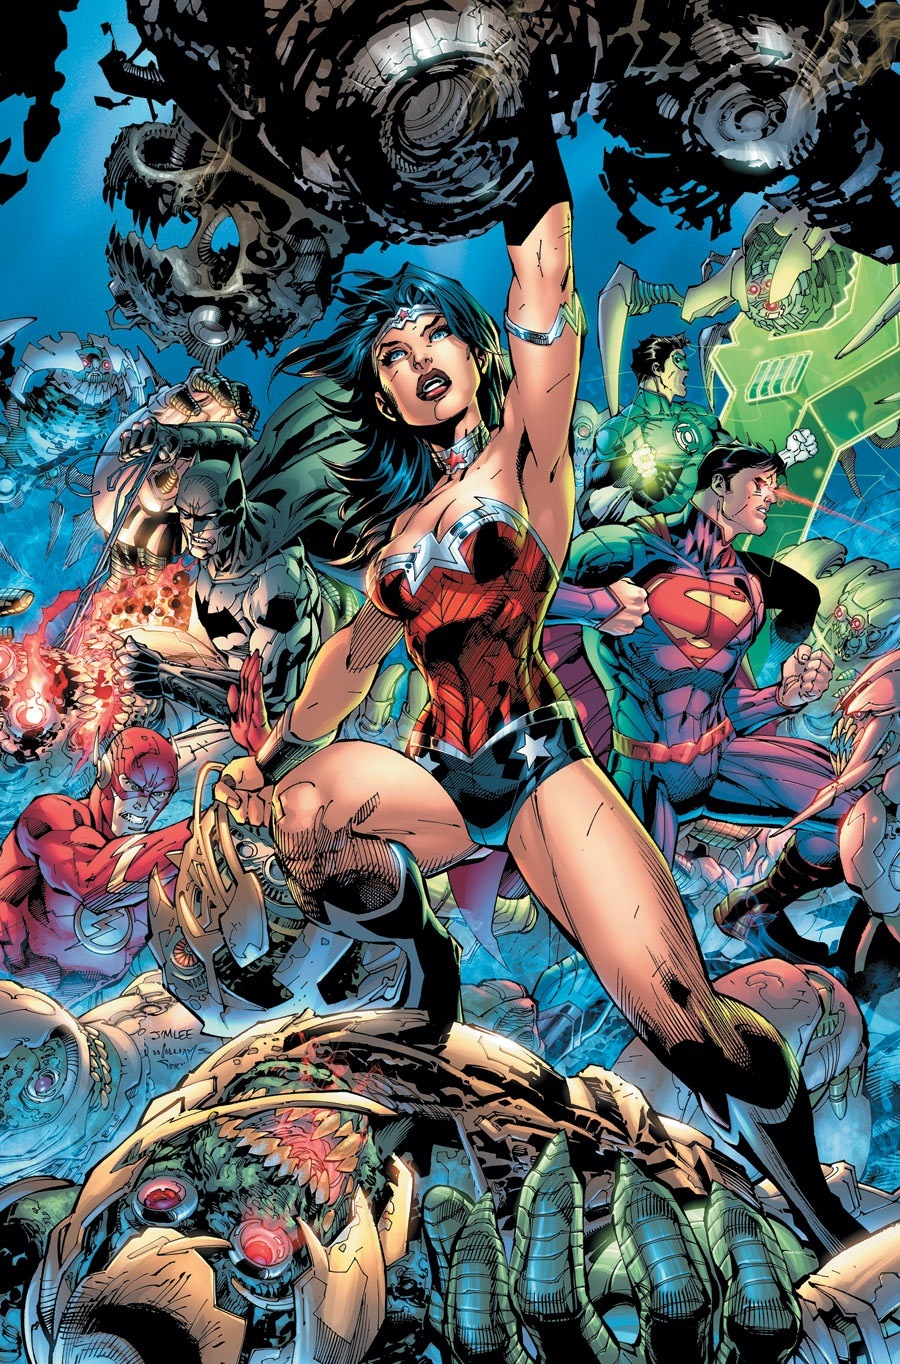 http://images4.wikia.nocookie.net/__cb20110830032121/marvel_dc/images/1/11/Wonder_Woman_0040.jpg